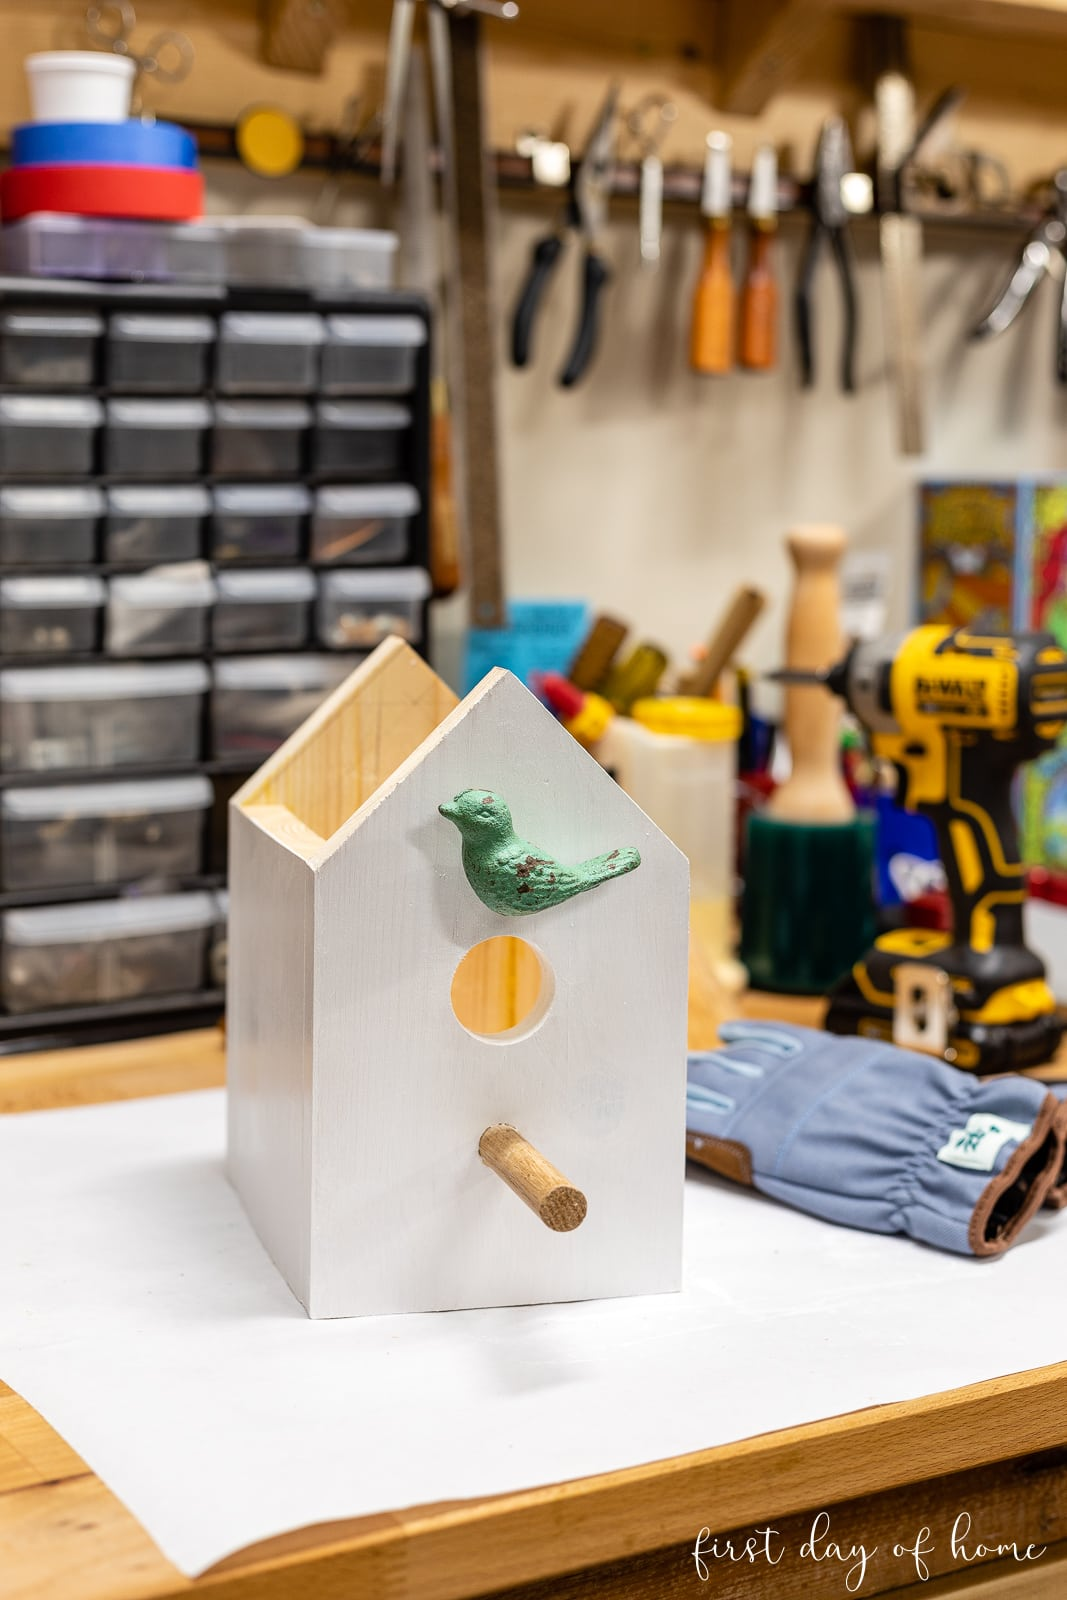 Painted DIY birdhouse on workbench